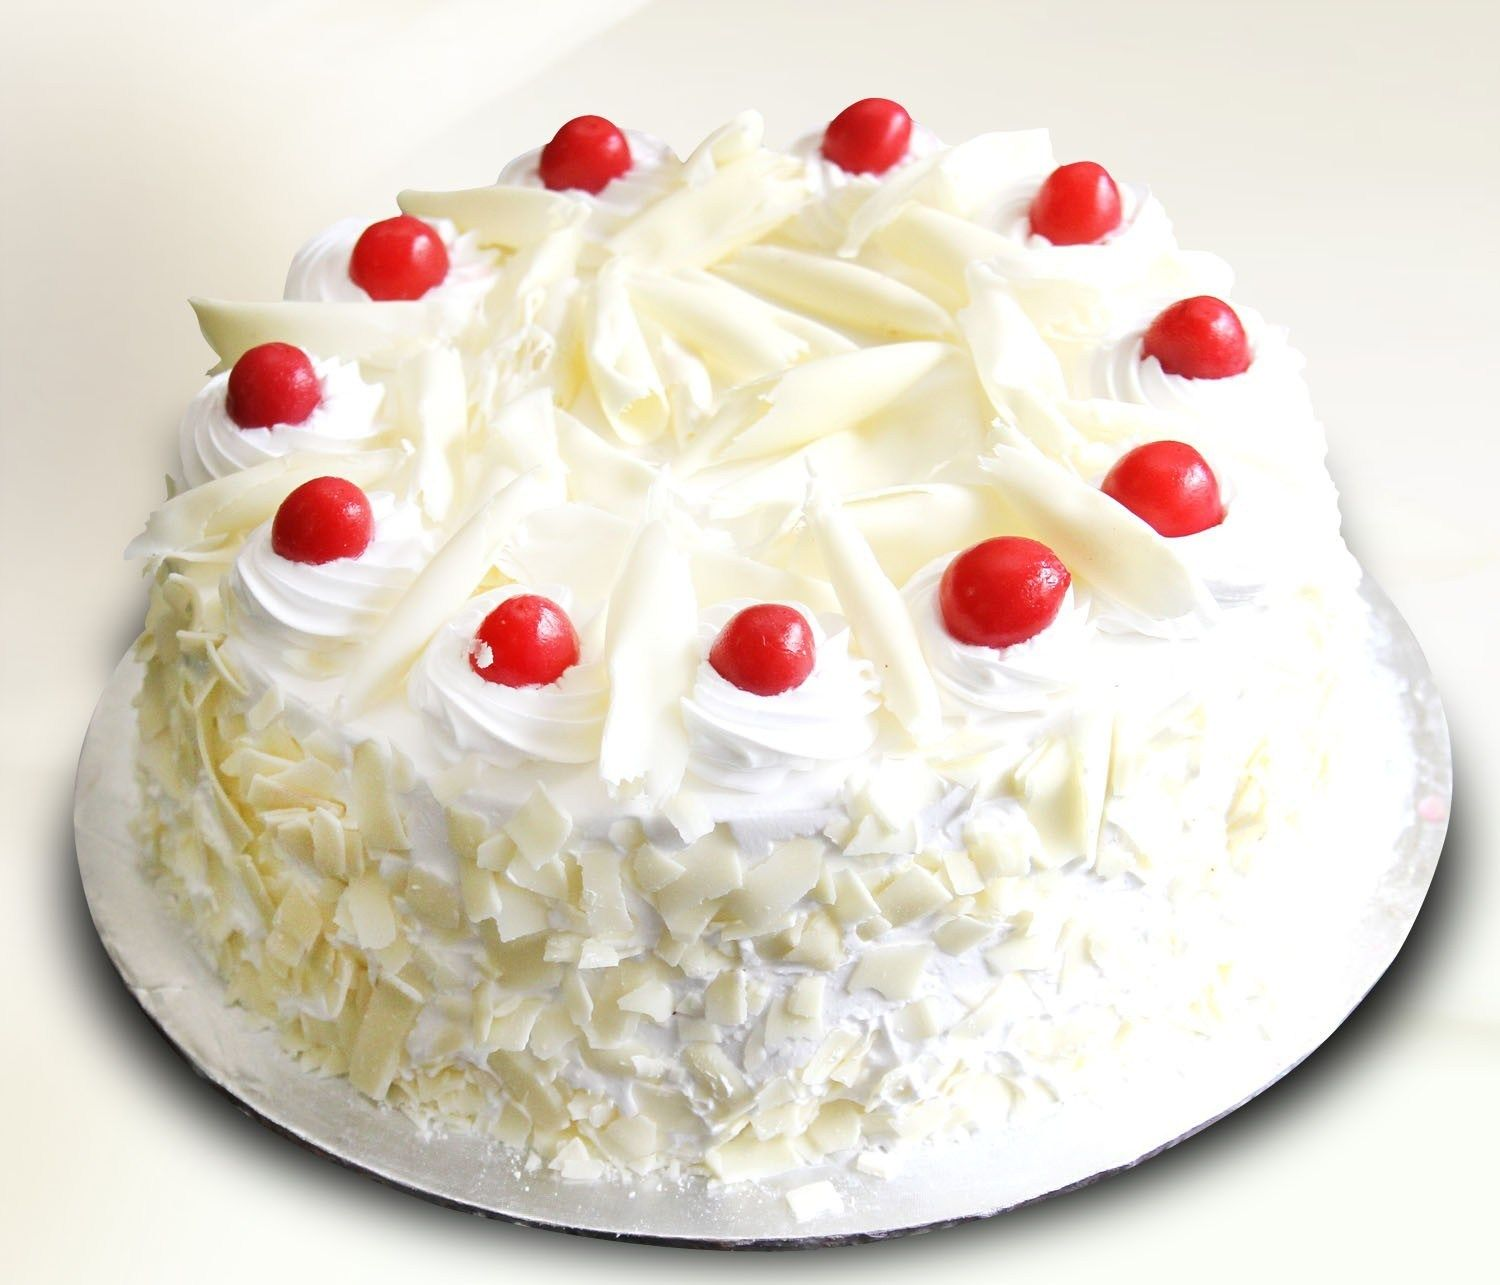 23 Inspiration Picture Of Send A Birthday Cake Cakes White Forest 2lbs Serena Hotel Gift To Pakistan